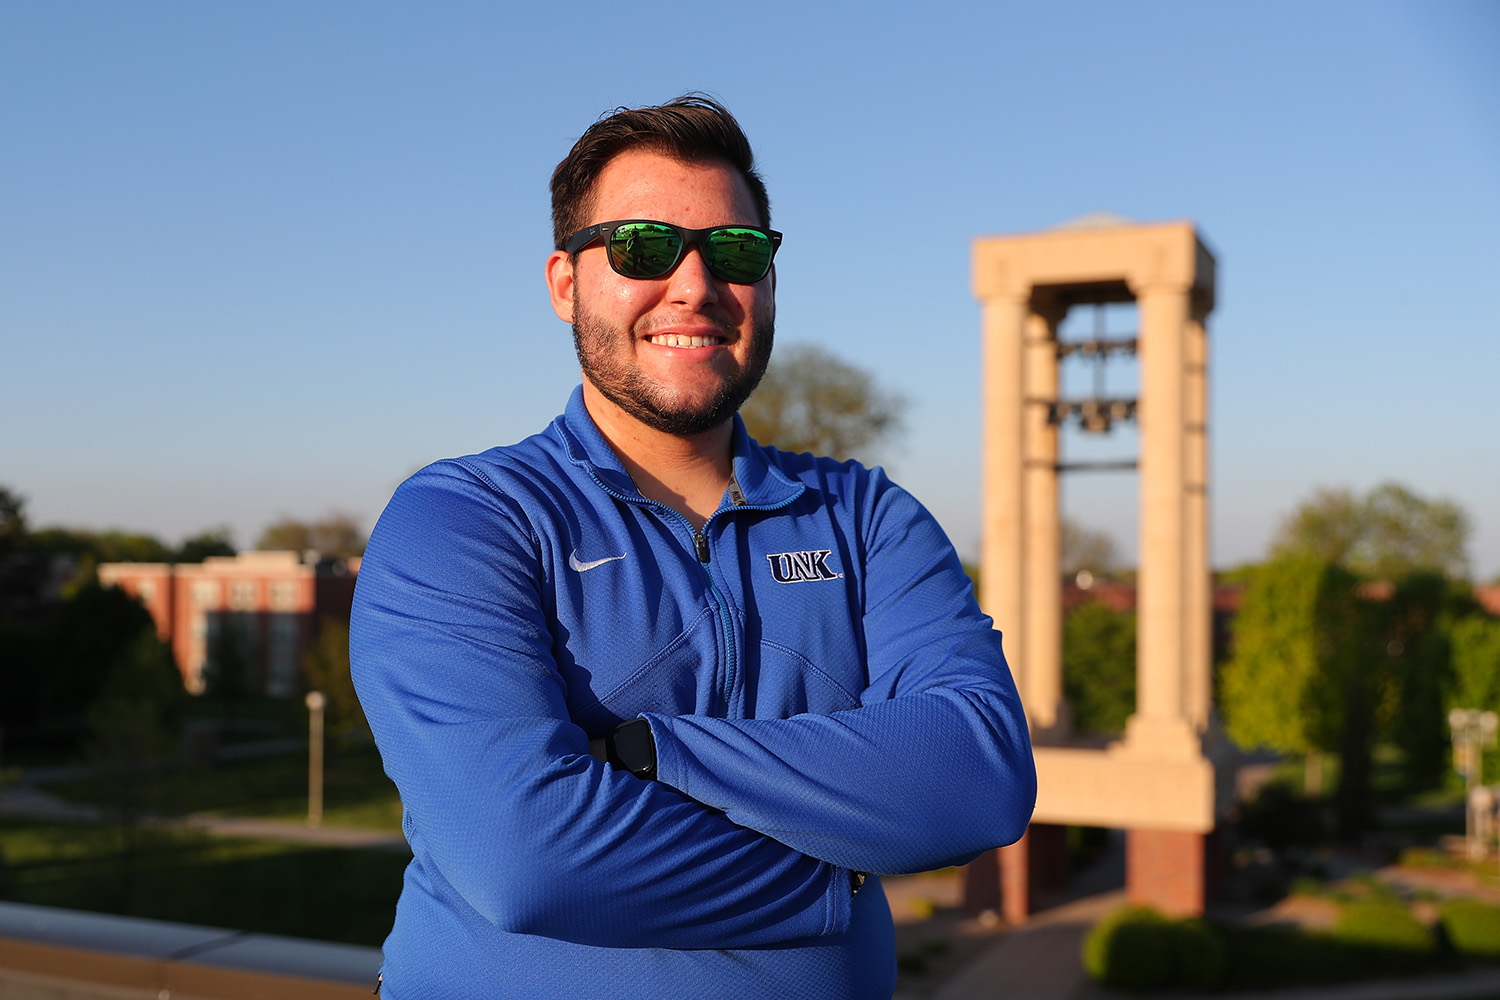 Adrian Almeida and his mother Yosdayly Hernandez emigrated from Cuba to the United States in search of a better future. Almeida found that future at UNK, where he's studying business administration with a marketing emphasis and a minor in criminal justice.